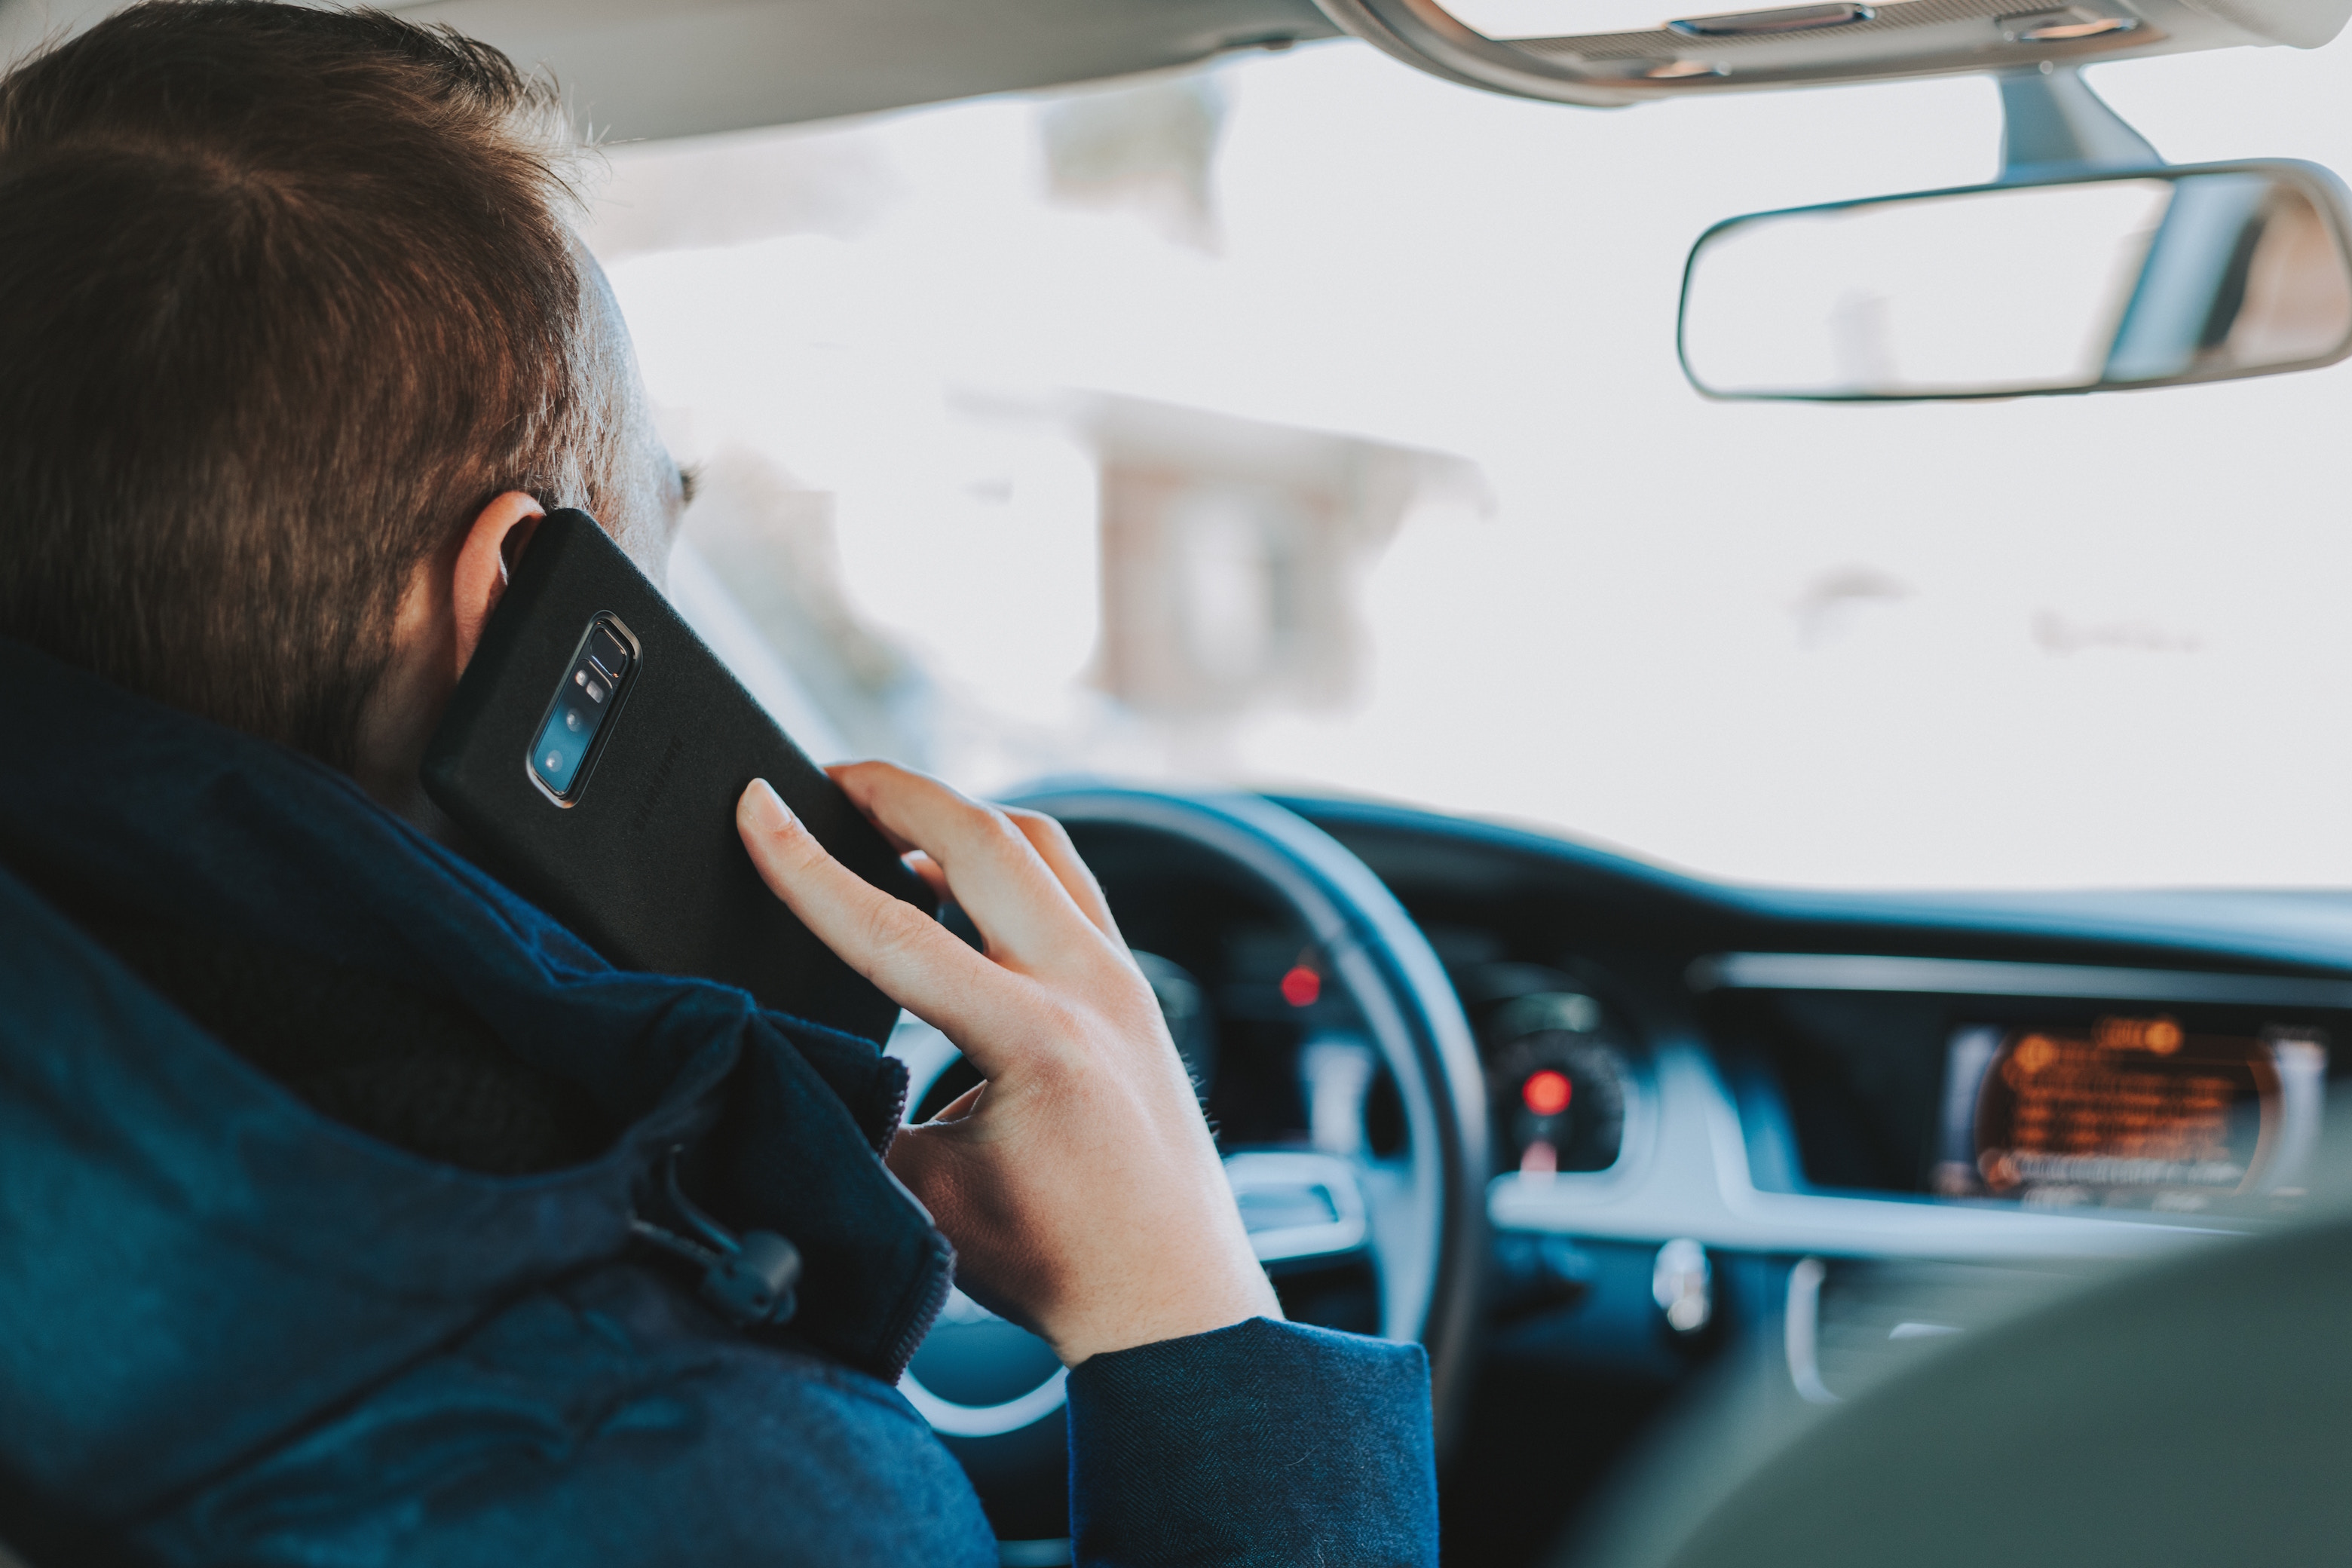 7-Easy-Ways-to-Deter-Distracted-Driving